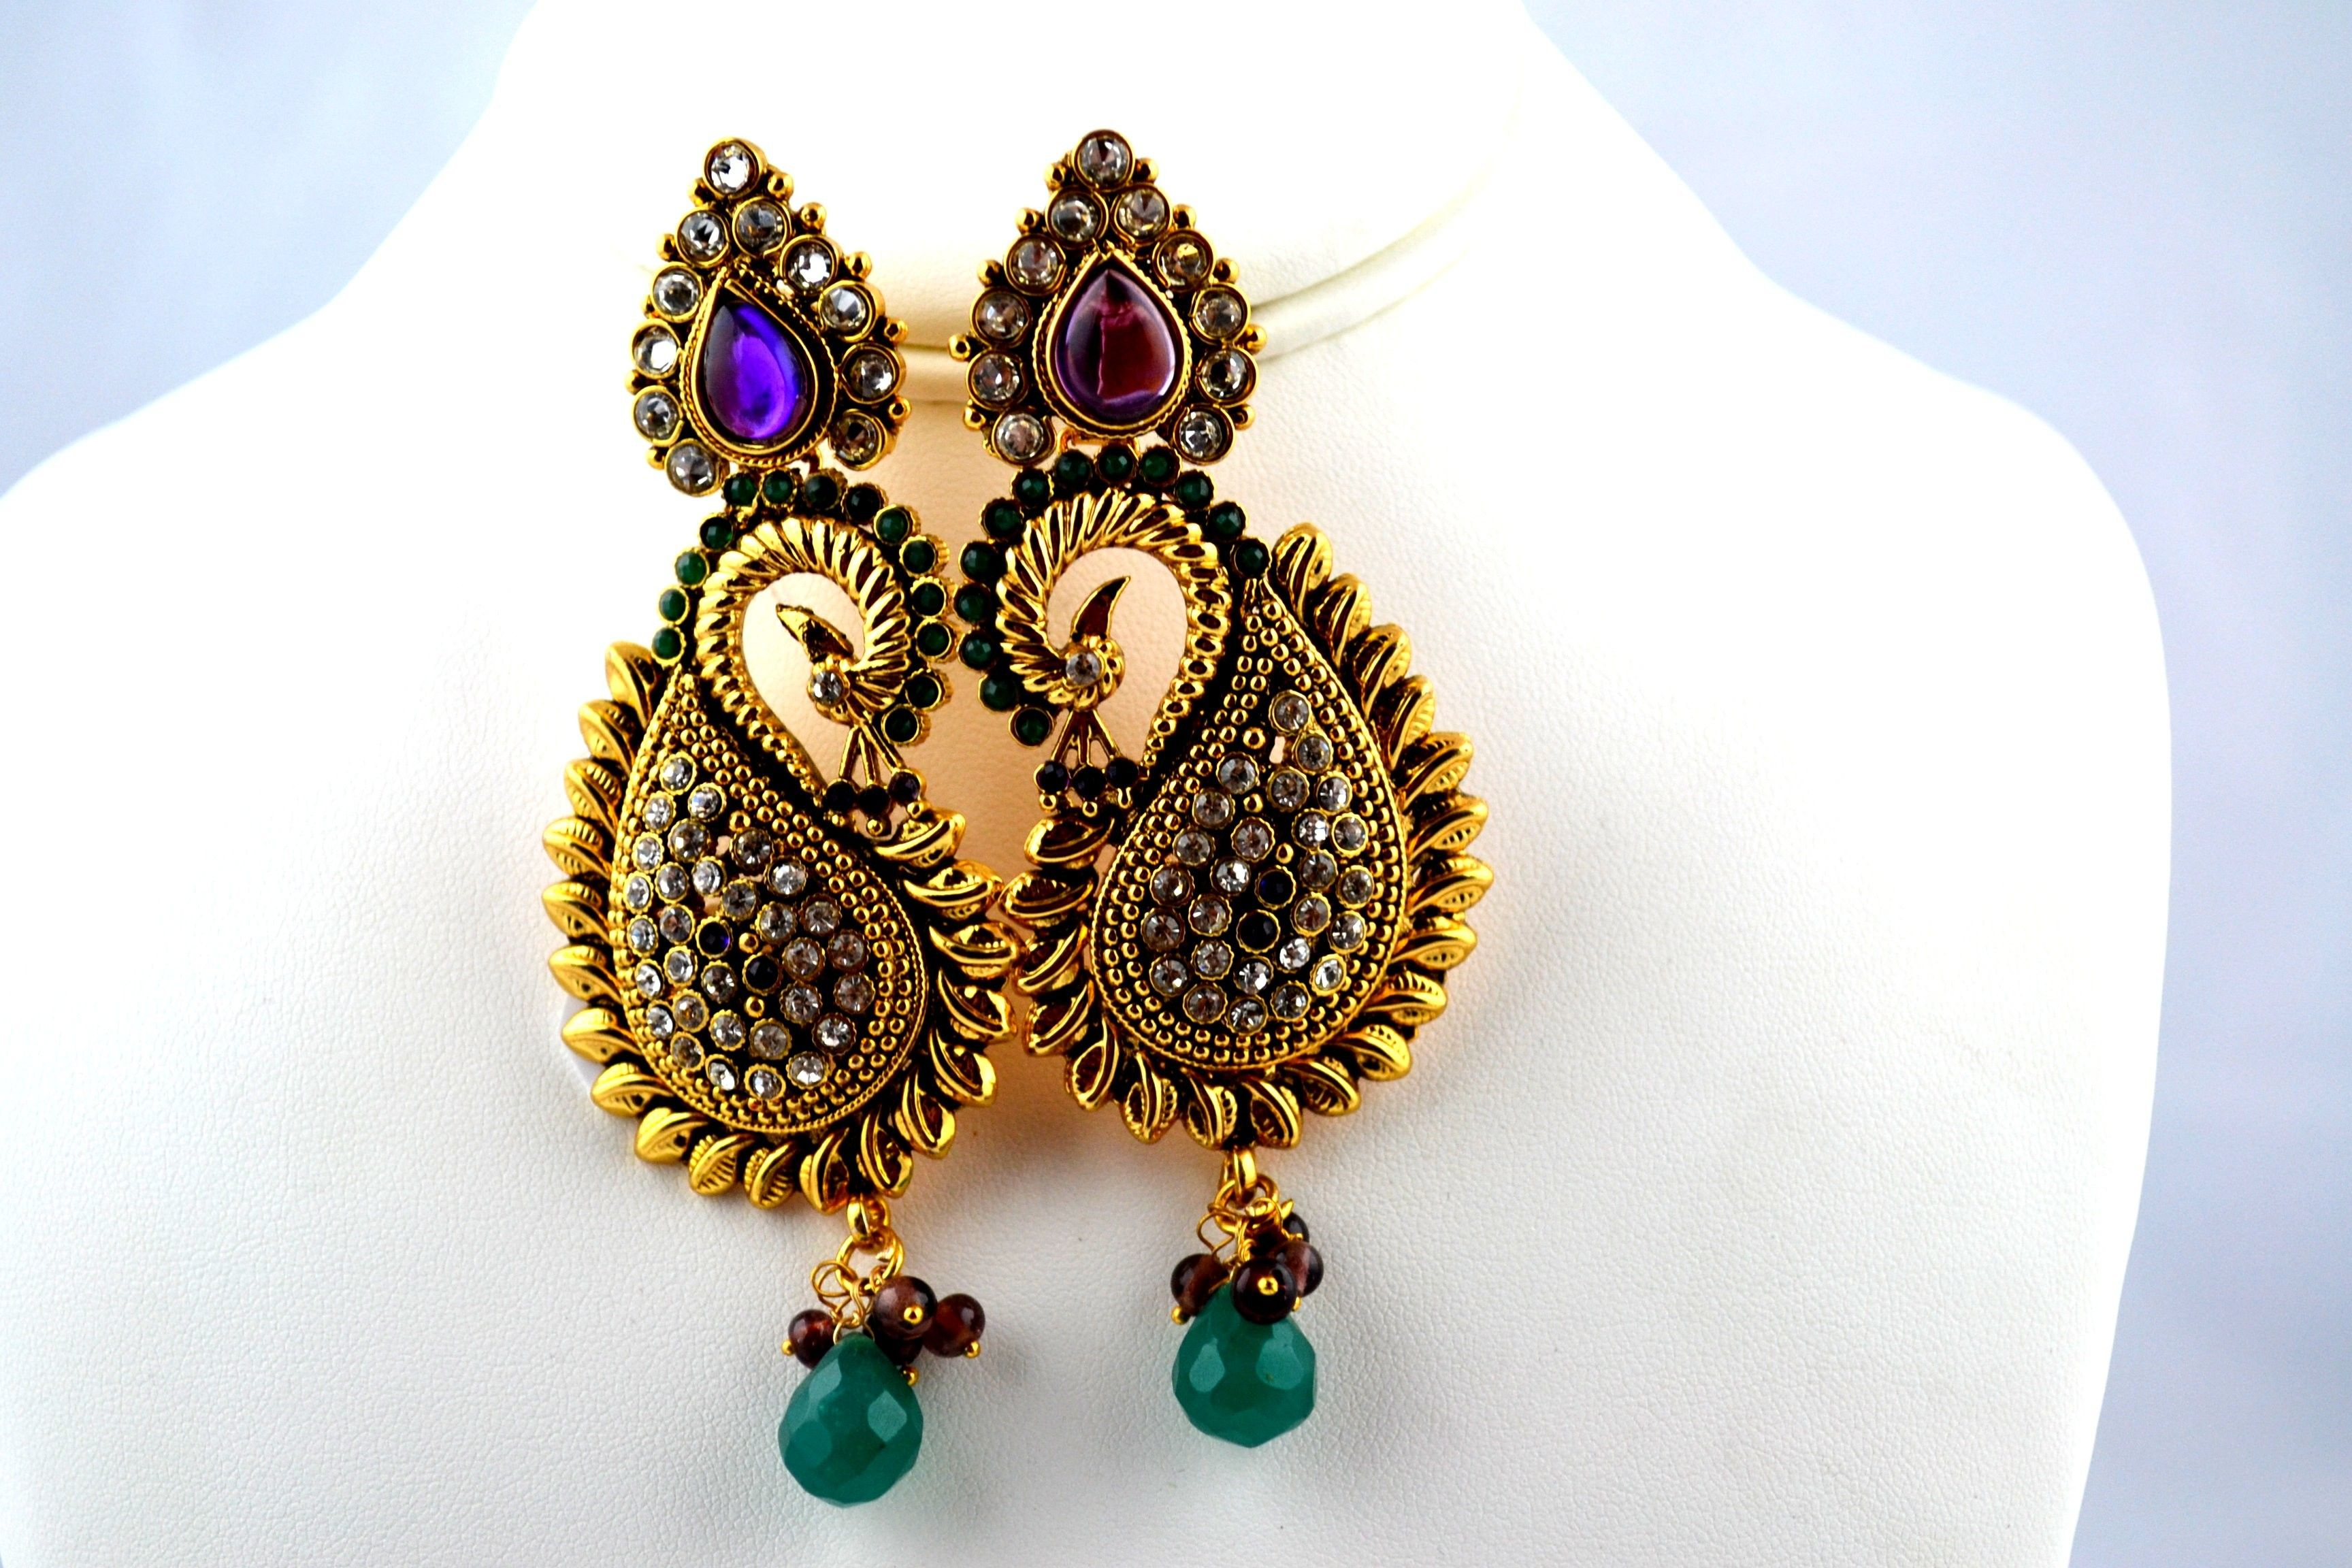 Indian Jewelry Store | Swasam.com: Hanging earring peacock design ...